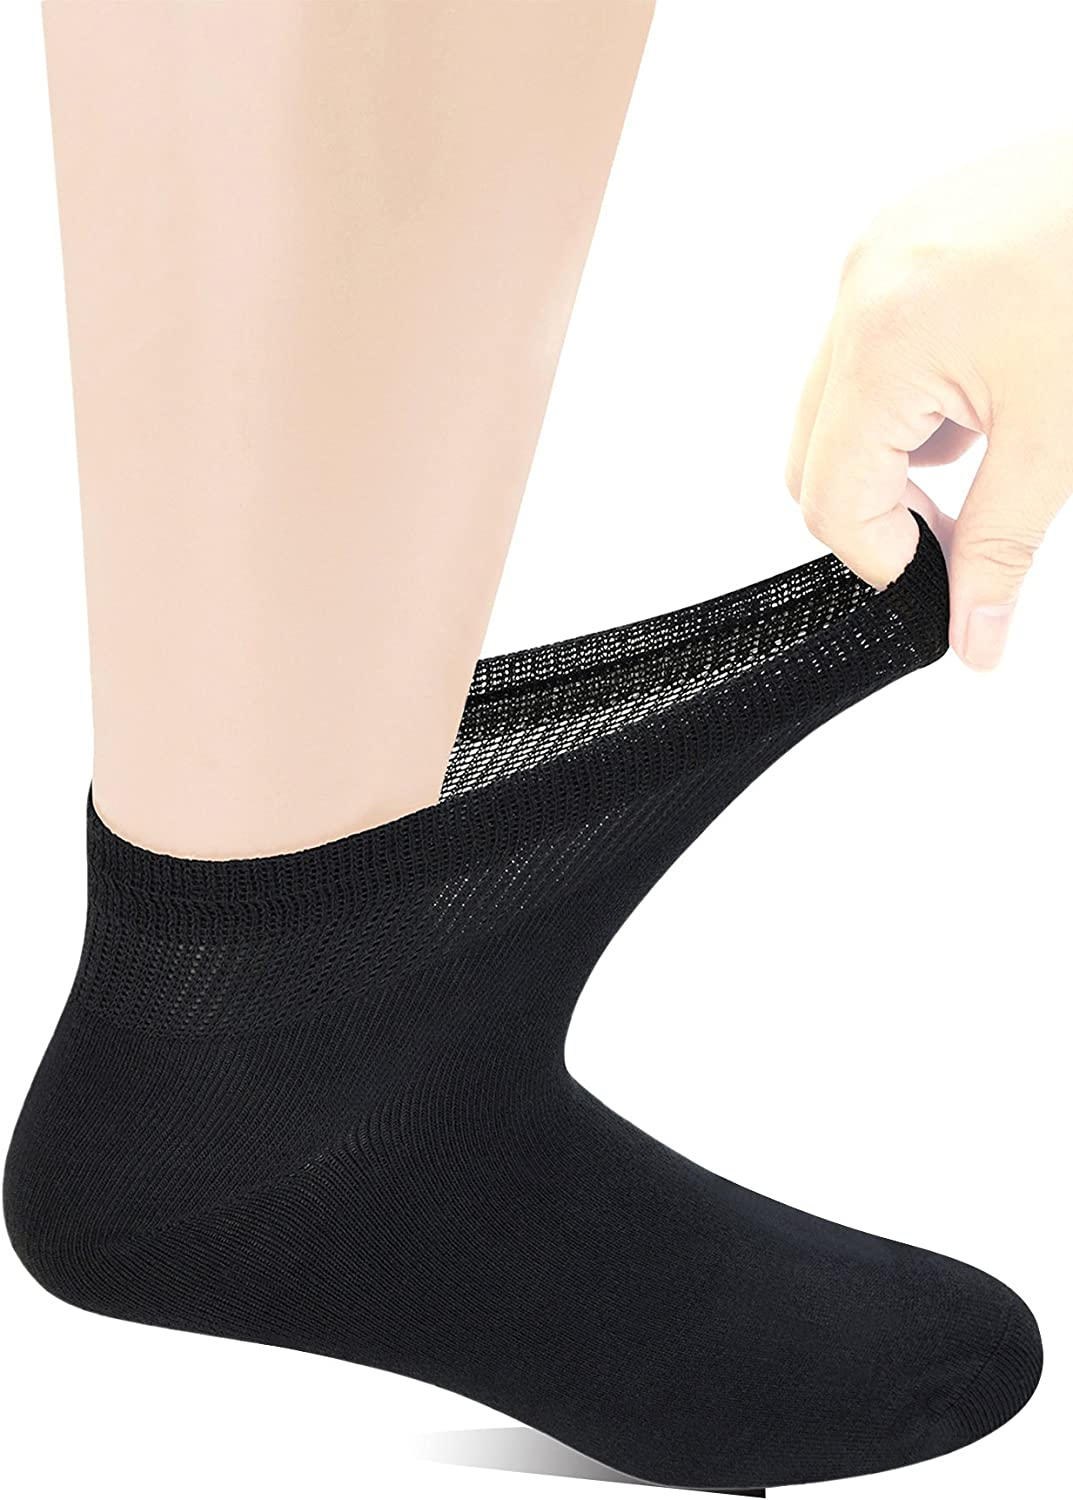 Yomandamor Men's Bamboo Diabetic Ankle Socks with Seamless Toe and Non-Binding Top,6 Pairs L Size(10-13) …